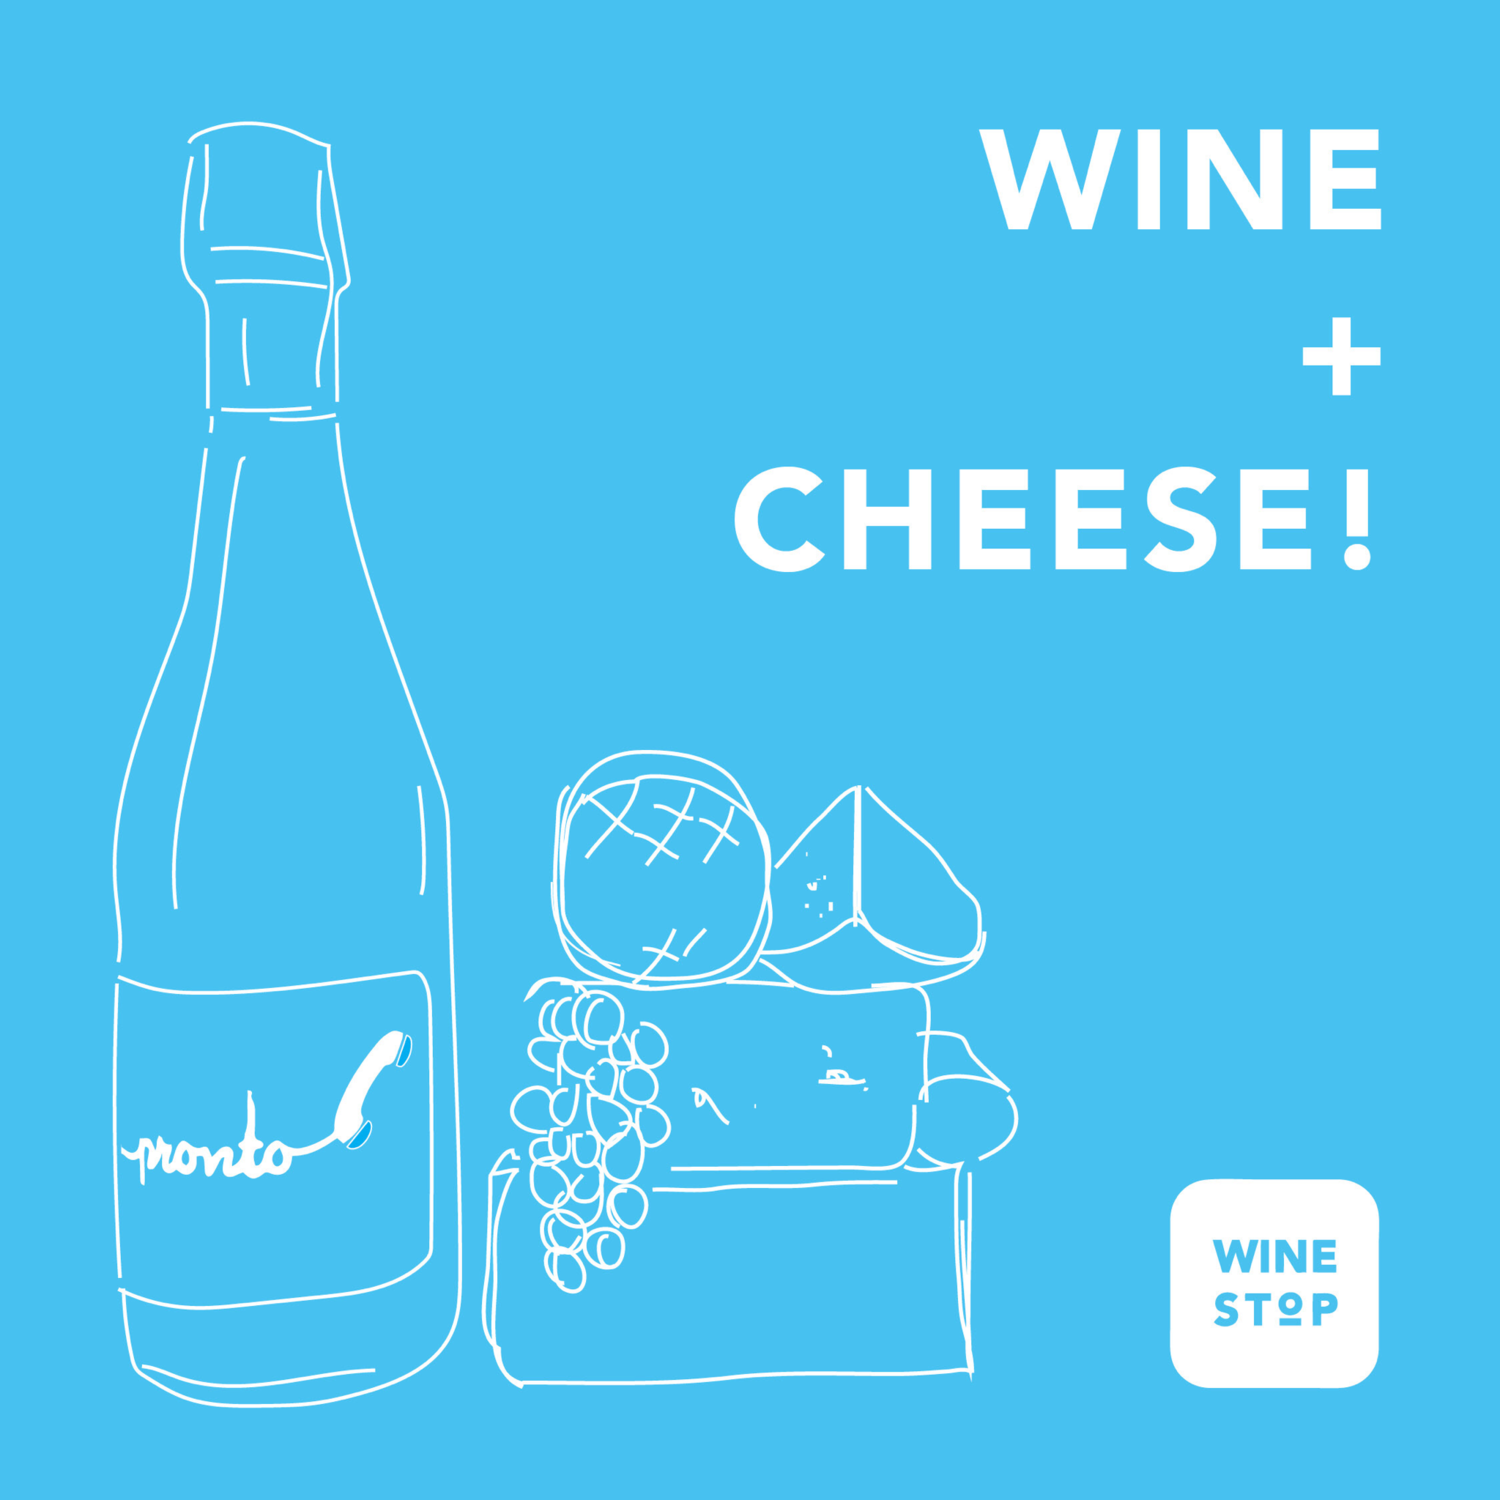 Every Thursday: 'Wine & Cheese'. Reservations For: Thursday, March 12th., 2020.